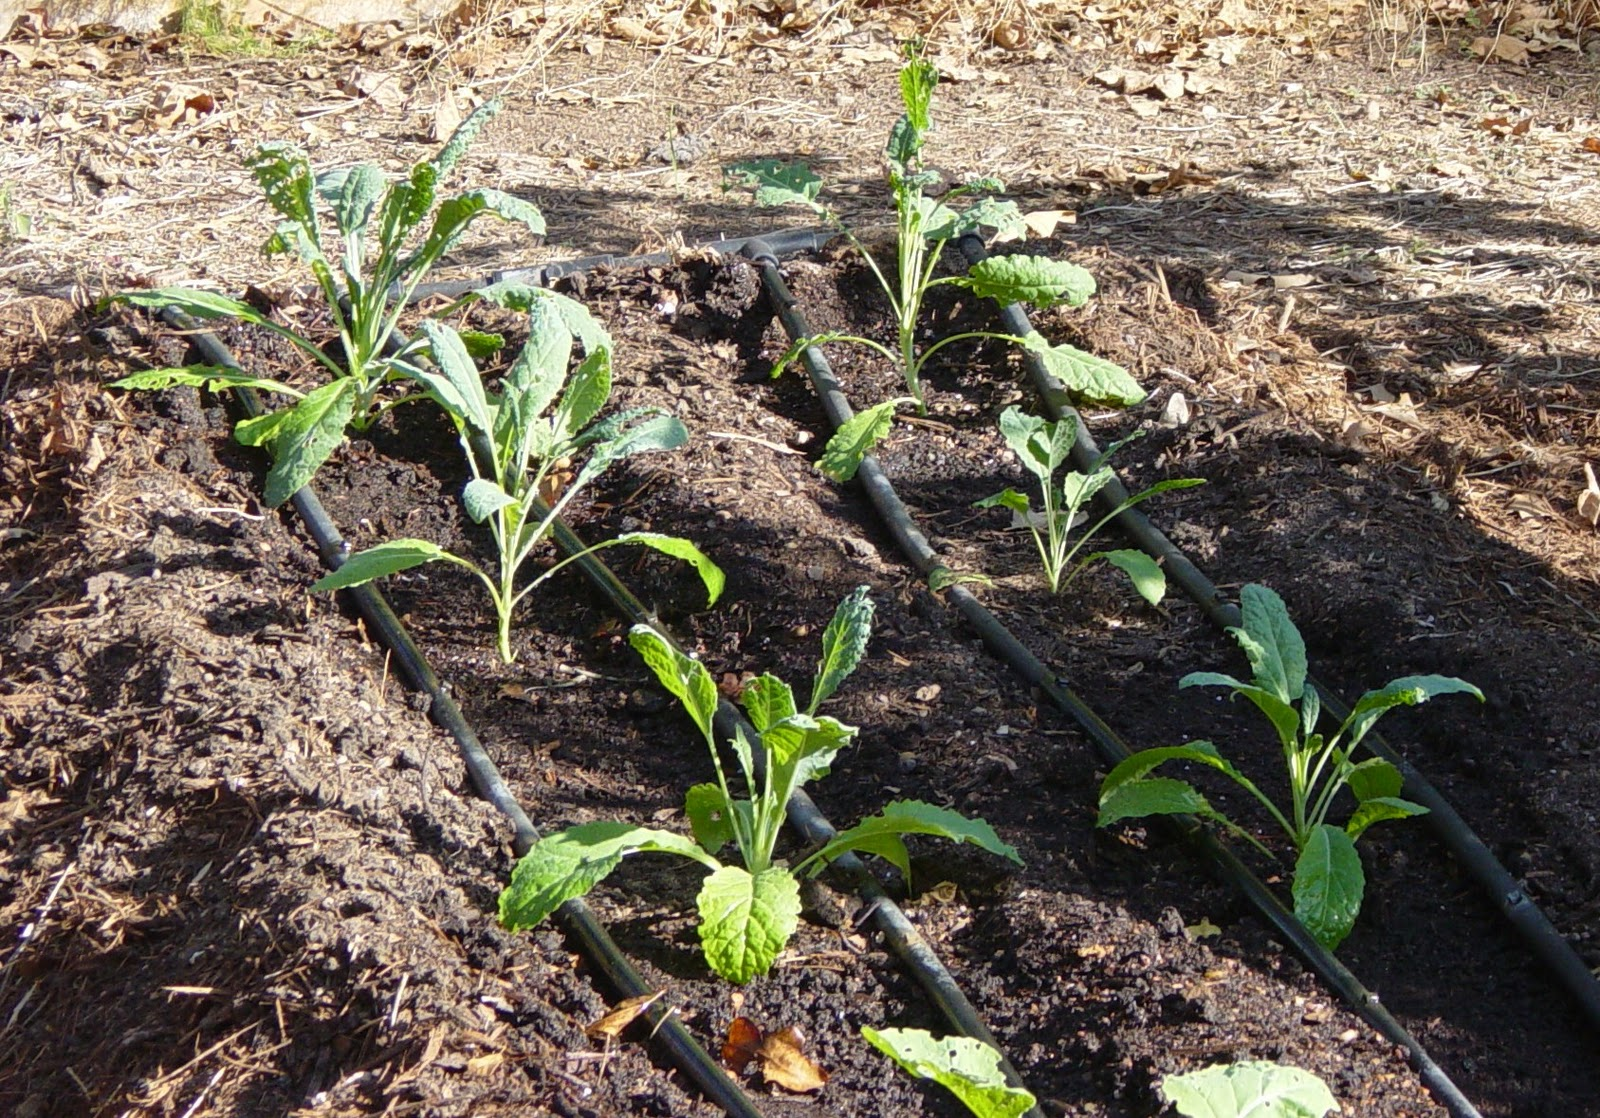 Garden Ally: Kale and Swiss Chard in the Garden